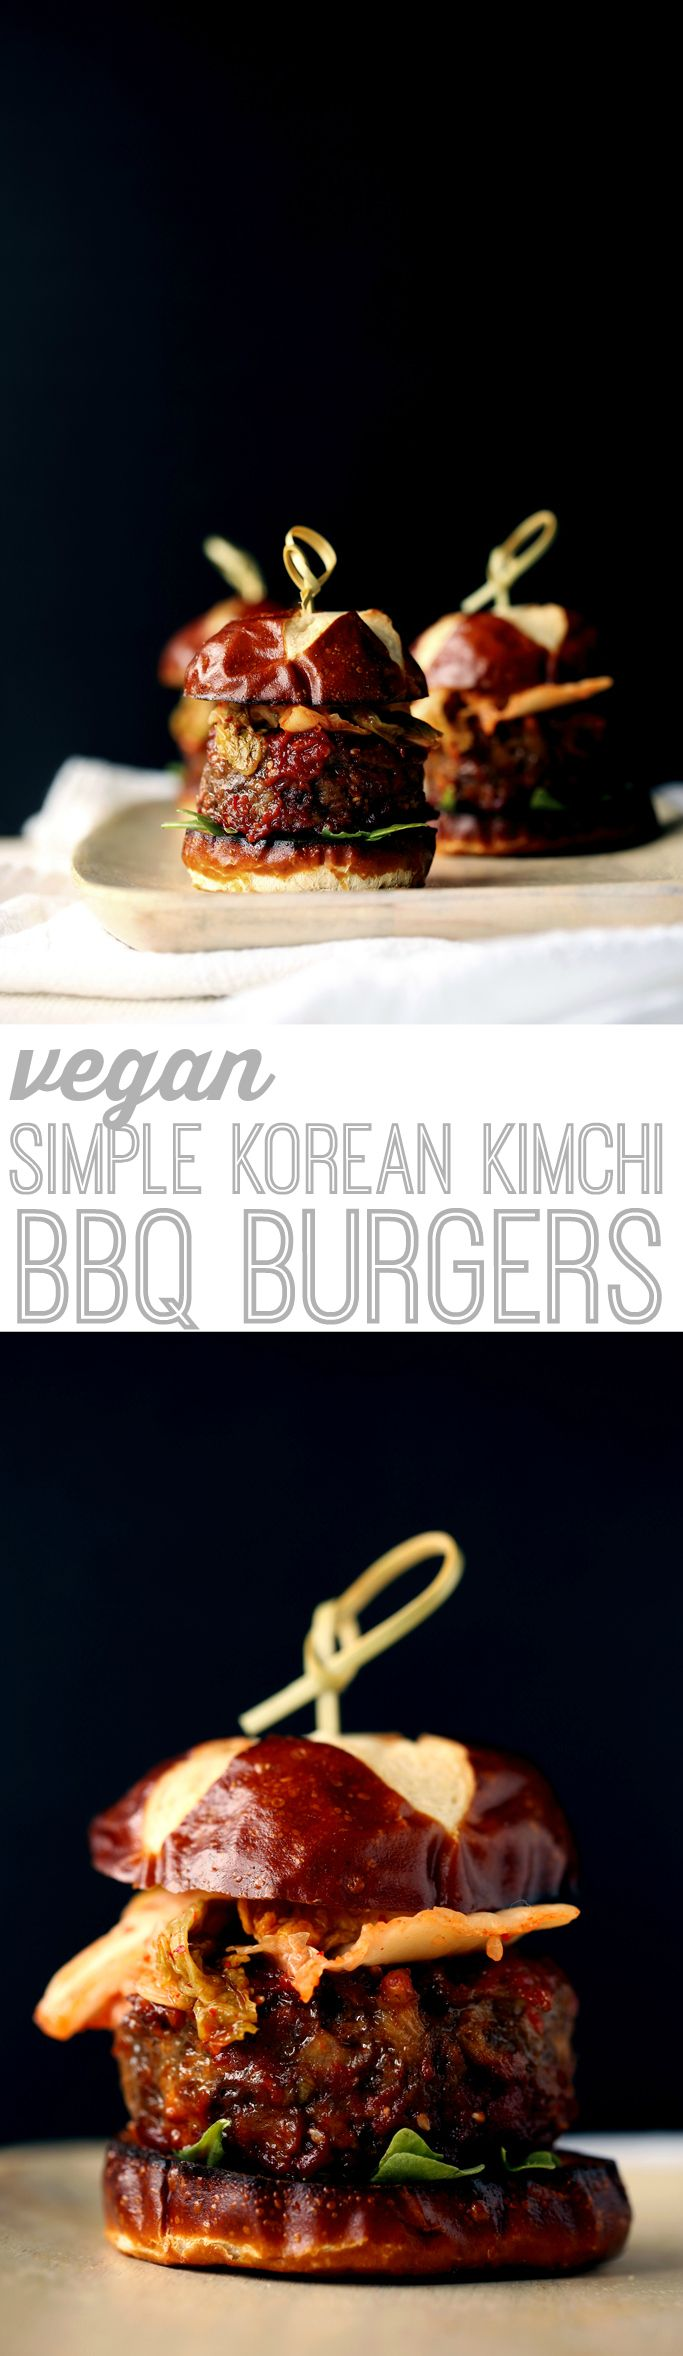 Vegan Simple Korean Kimchi BBQ Burgers from Mastering the Art of Vegan Cooking